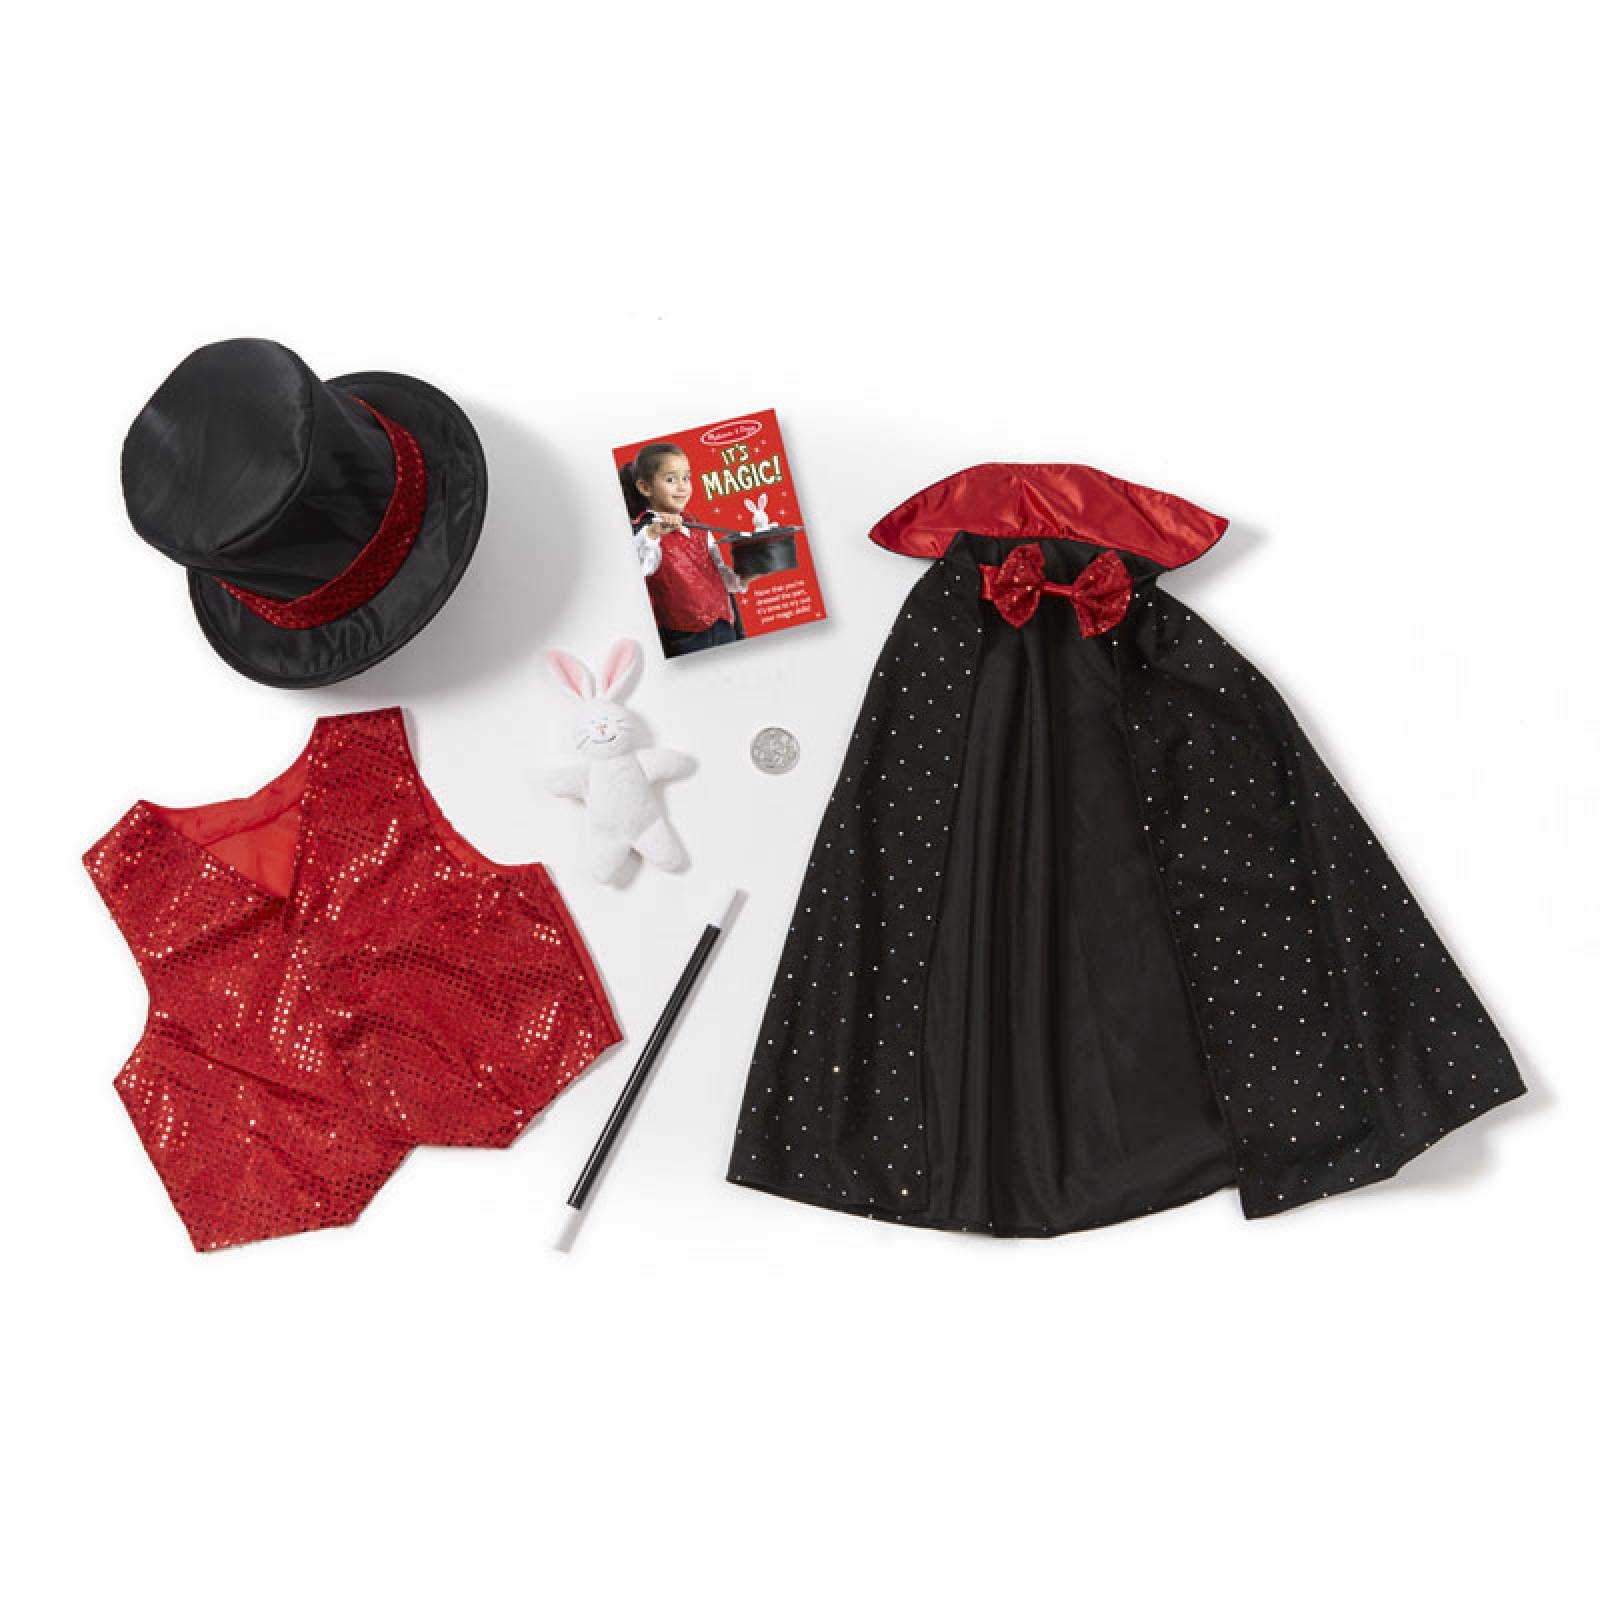 Magician Fancy Dress Role Play Costume Set thumbnails